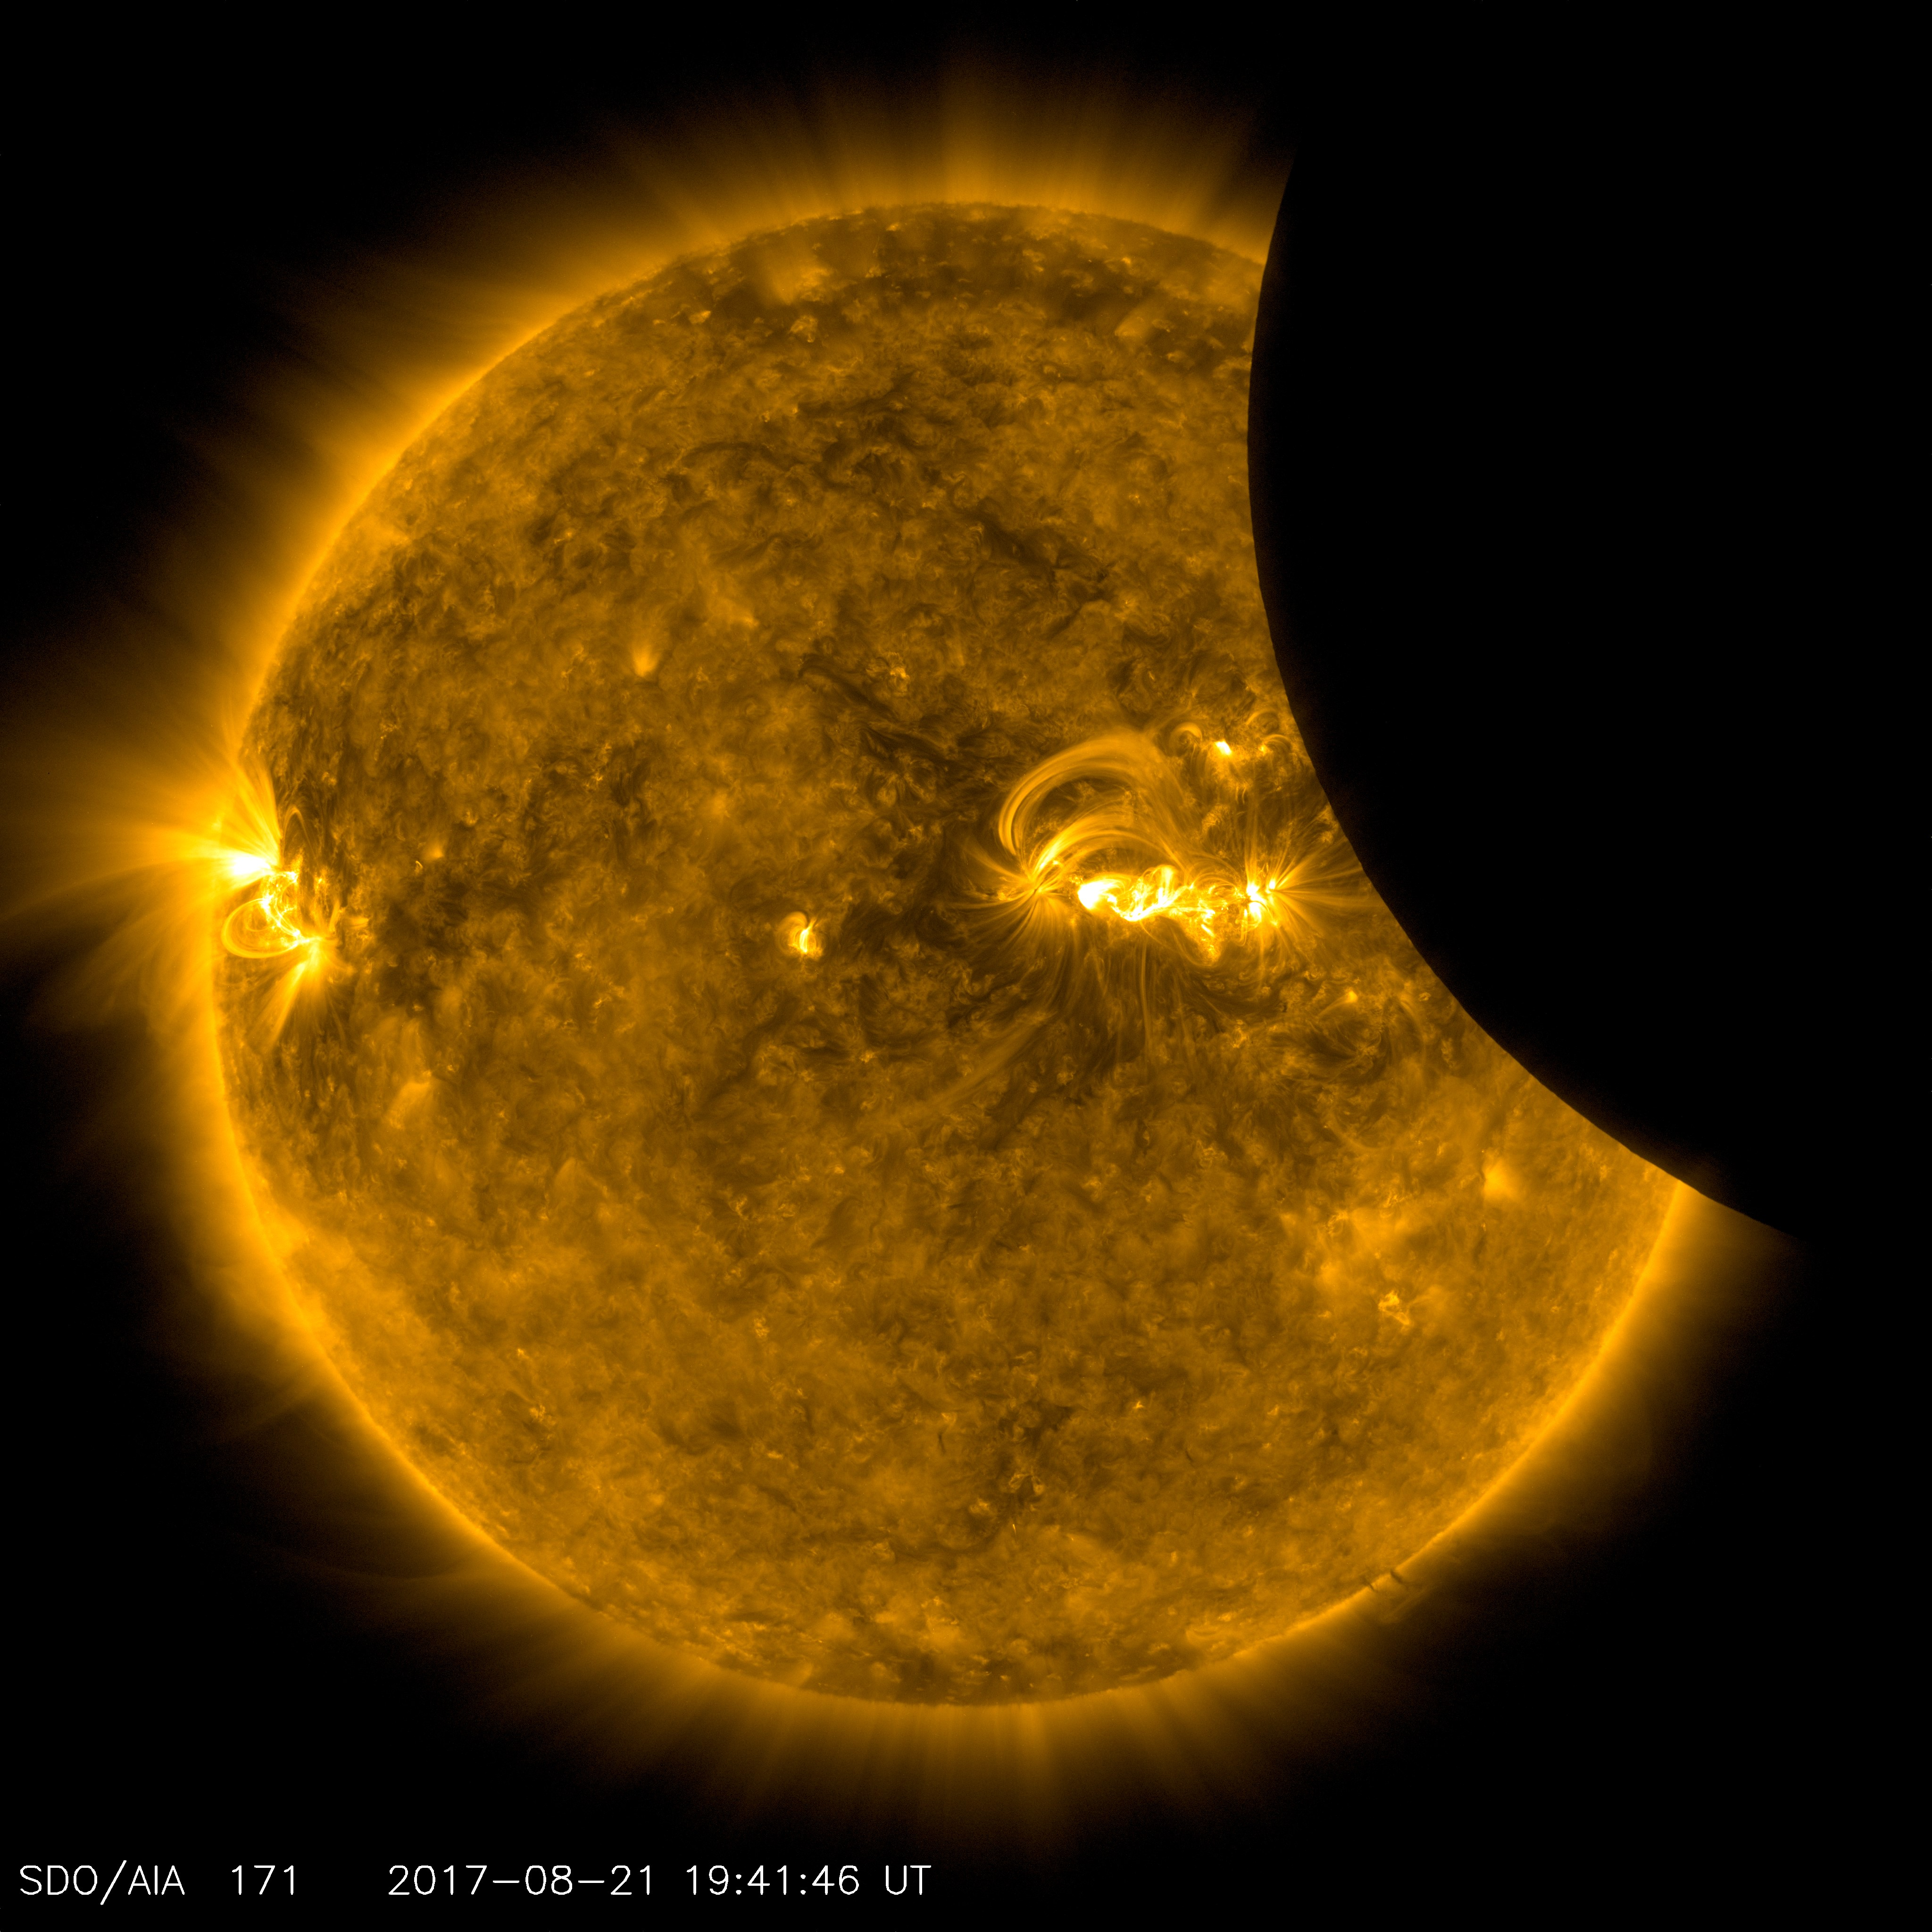 Sdo views 2017 solar eclipse nasa for Top pictures of the day